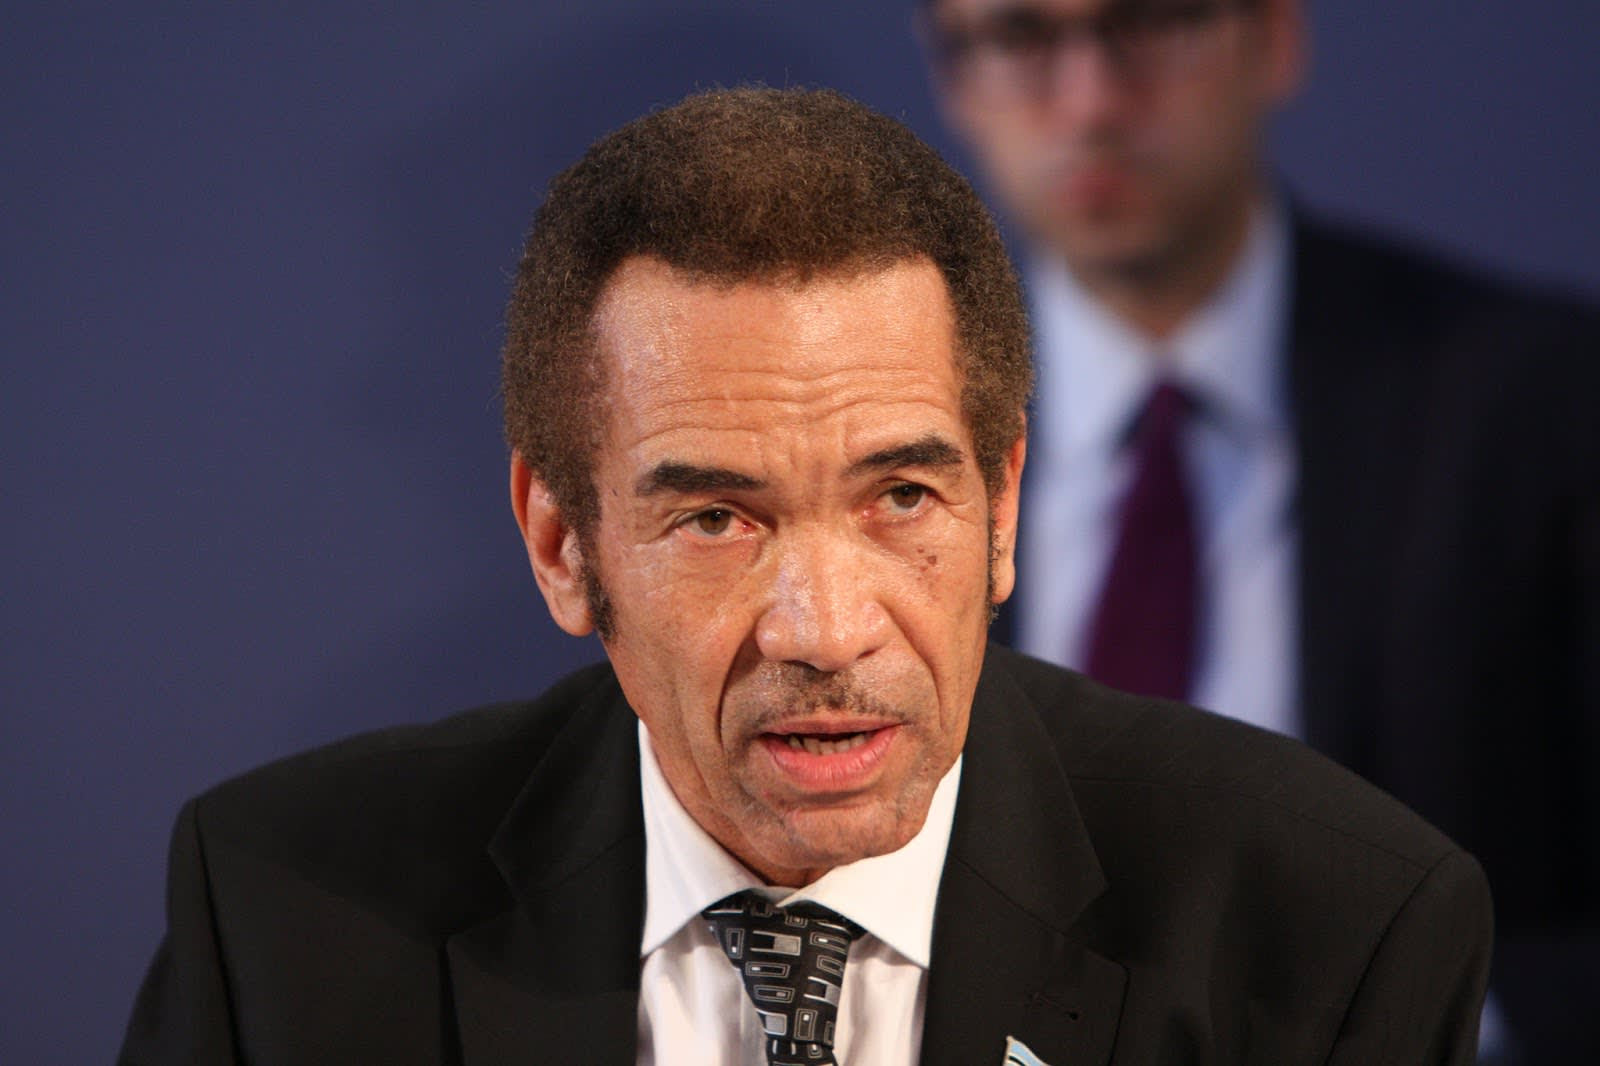 Former President Ian Khama of Botswana at the London Conference on The Illegal Wildlife Trade, 13 February 2014. Photo by Foreign and Commonwealth Office